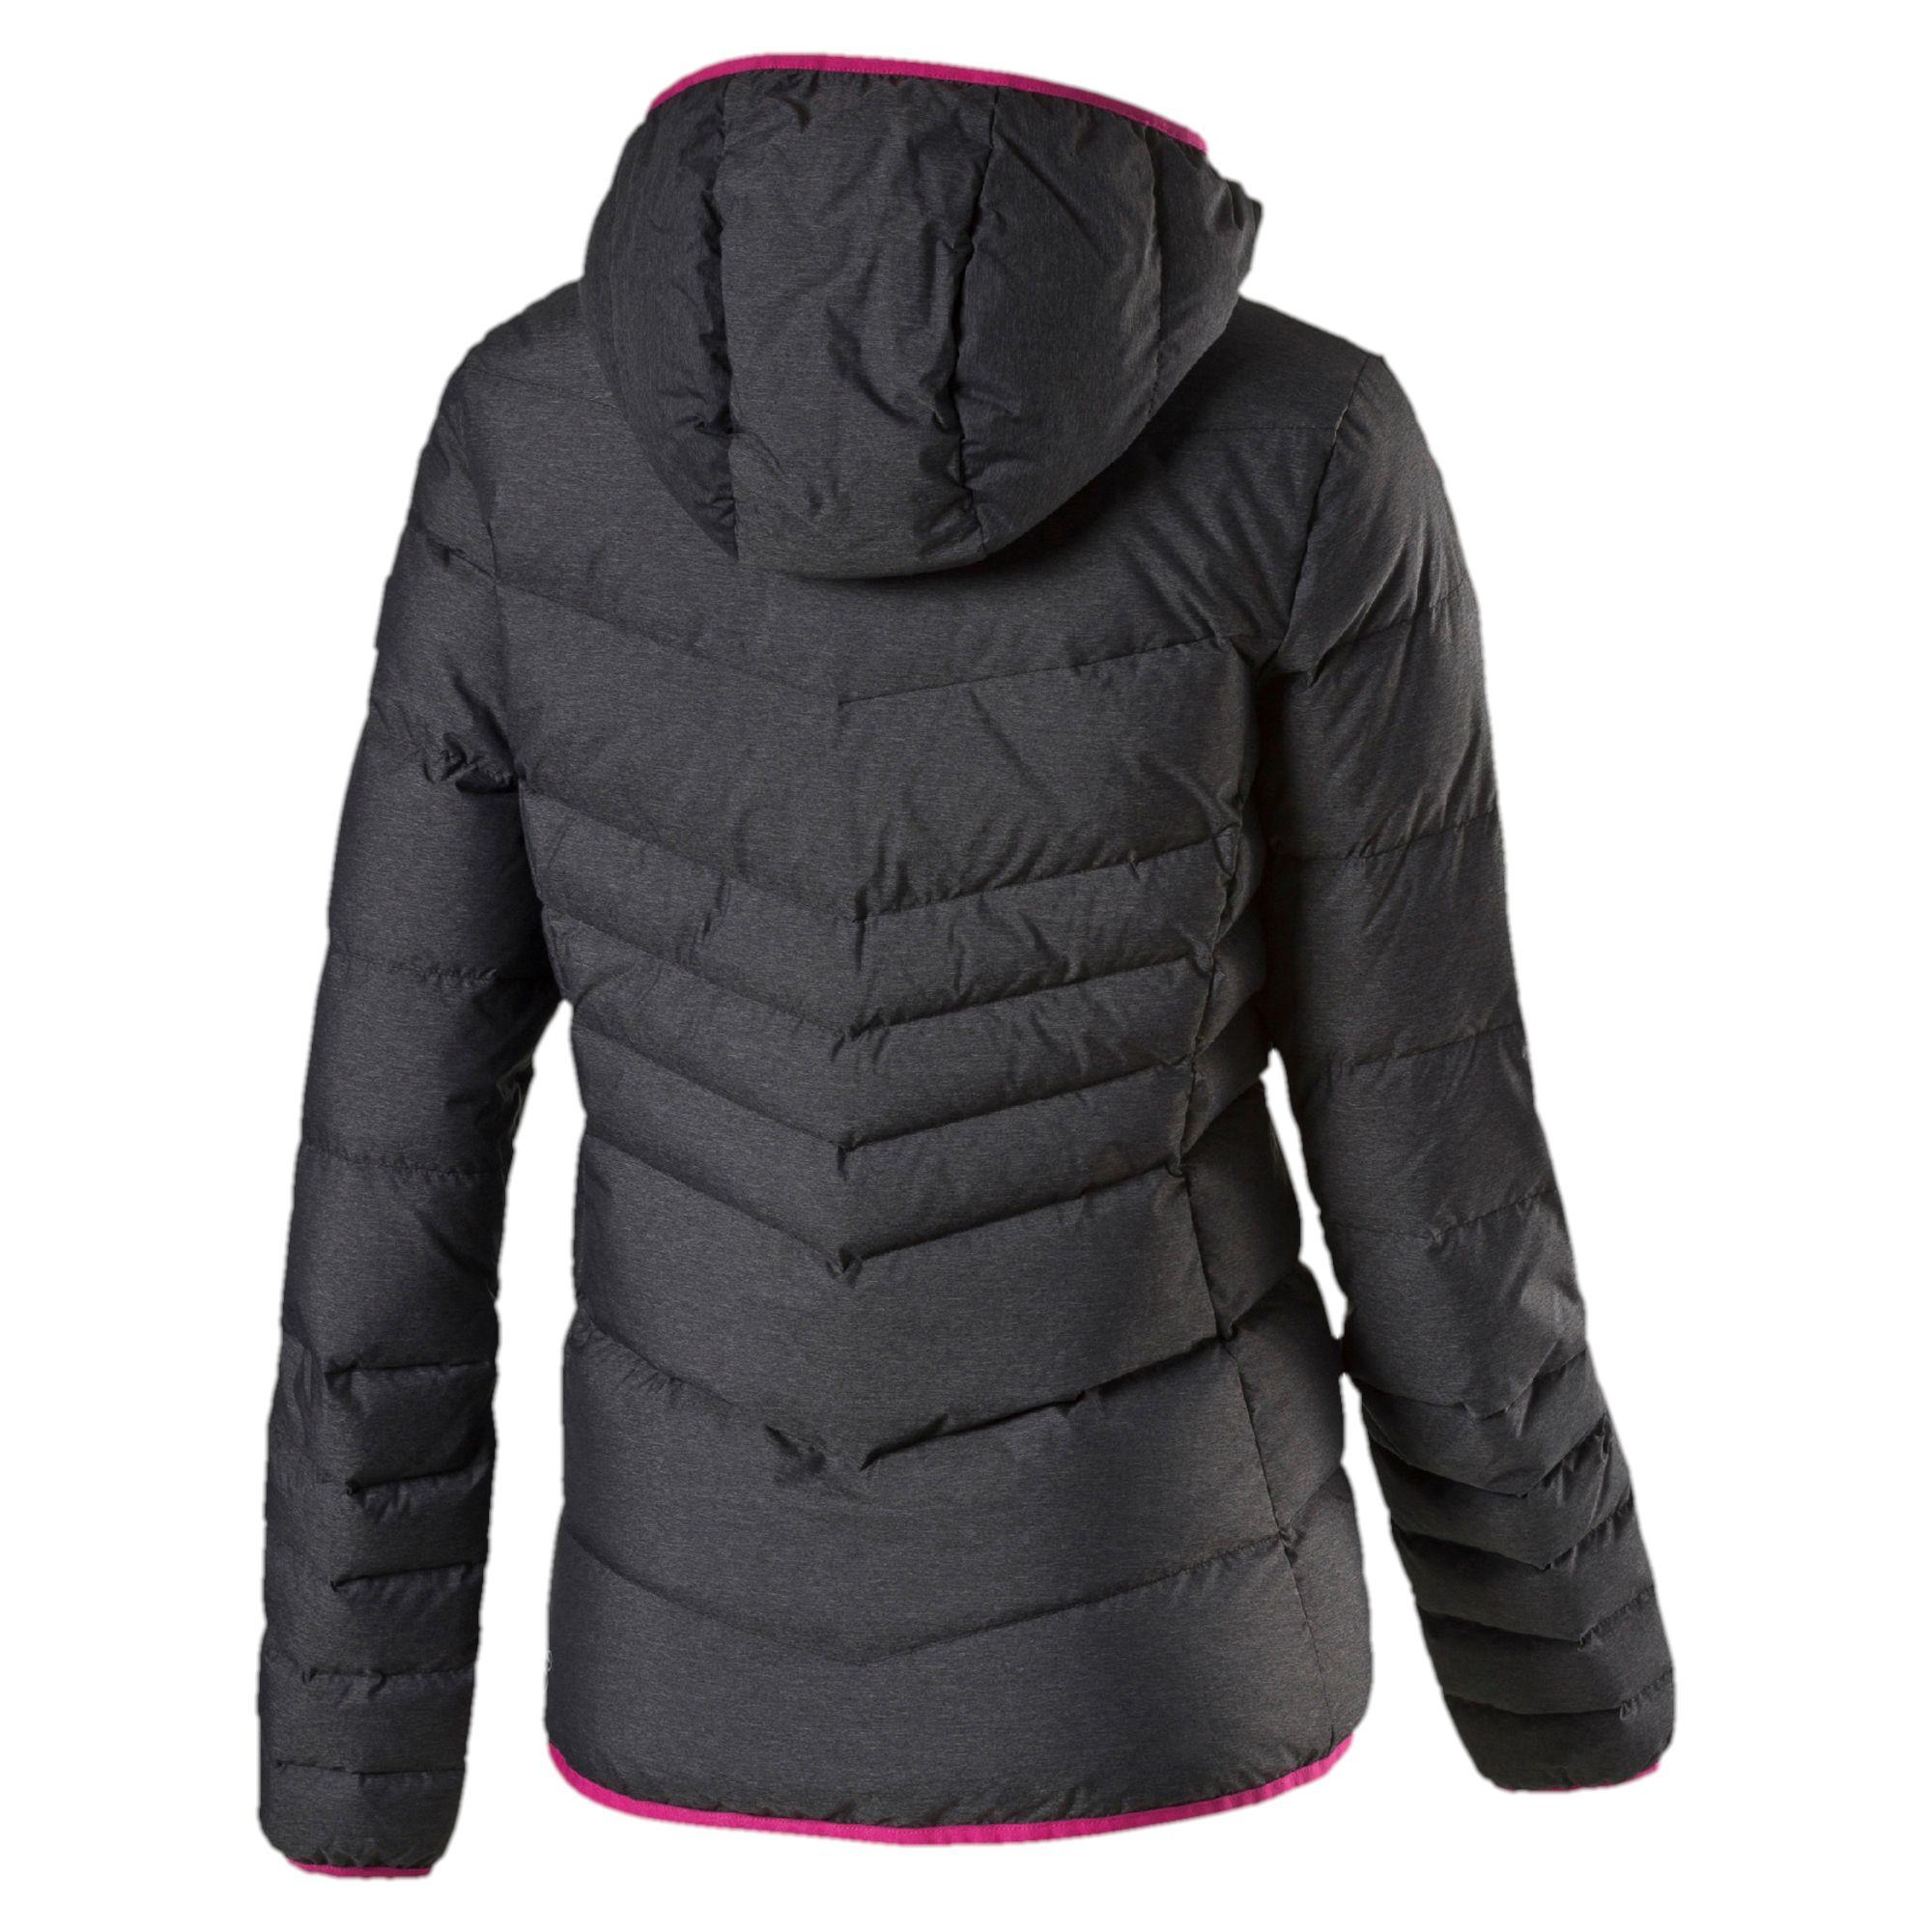 e347a47e0ec5 Lyst - PUMA Active 600 Packlite Hooded Down Jacket in Black